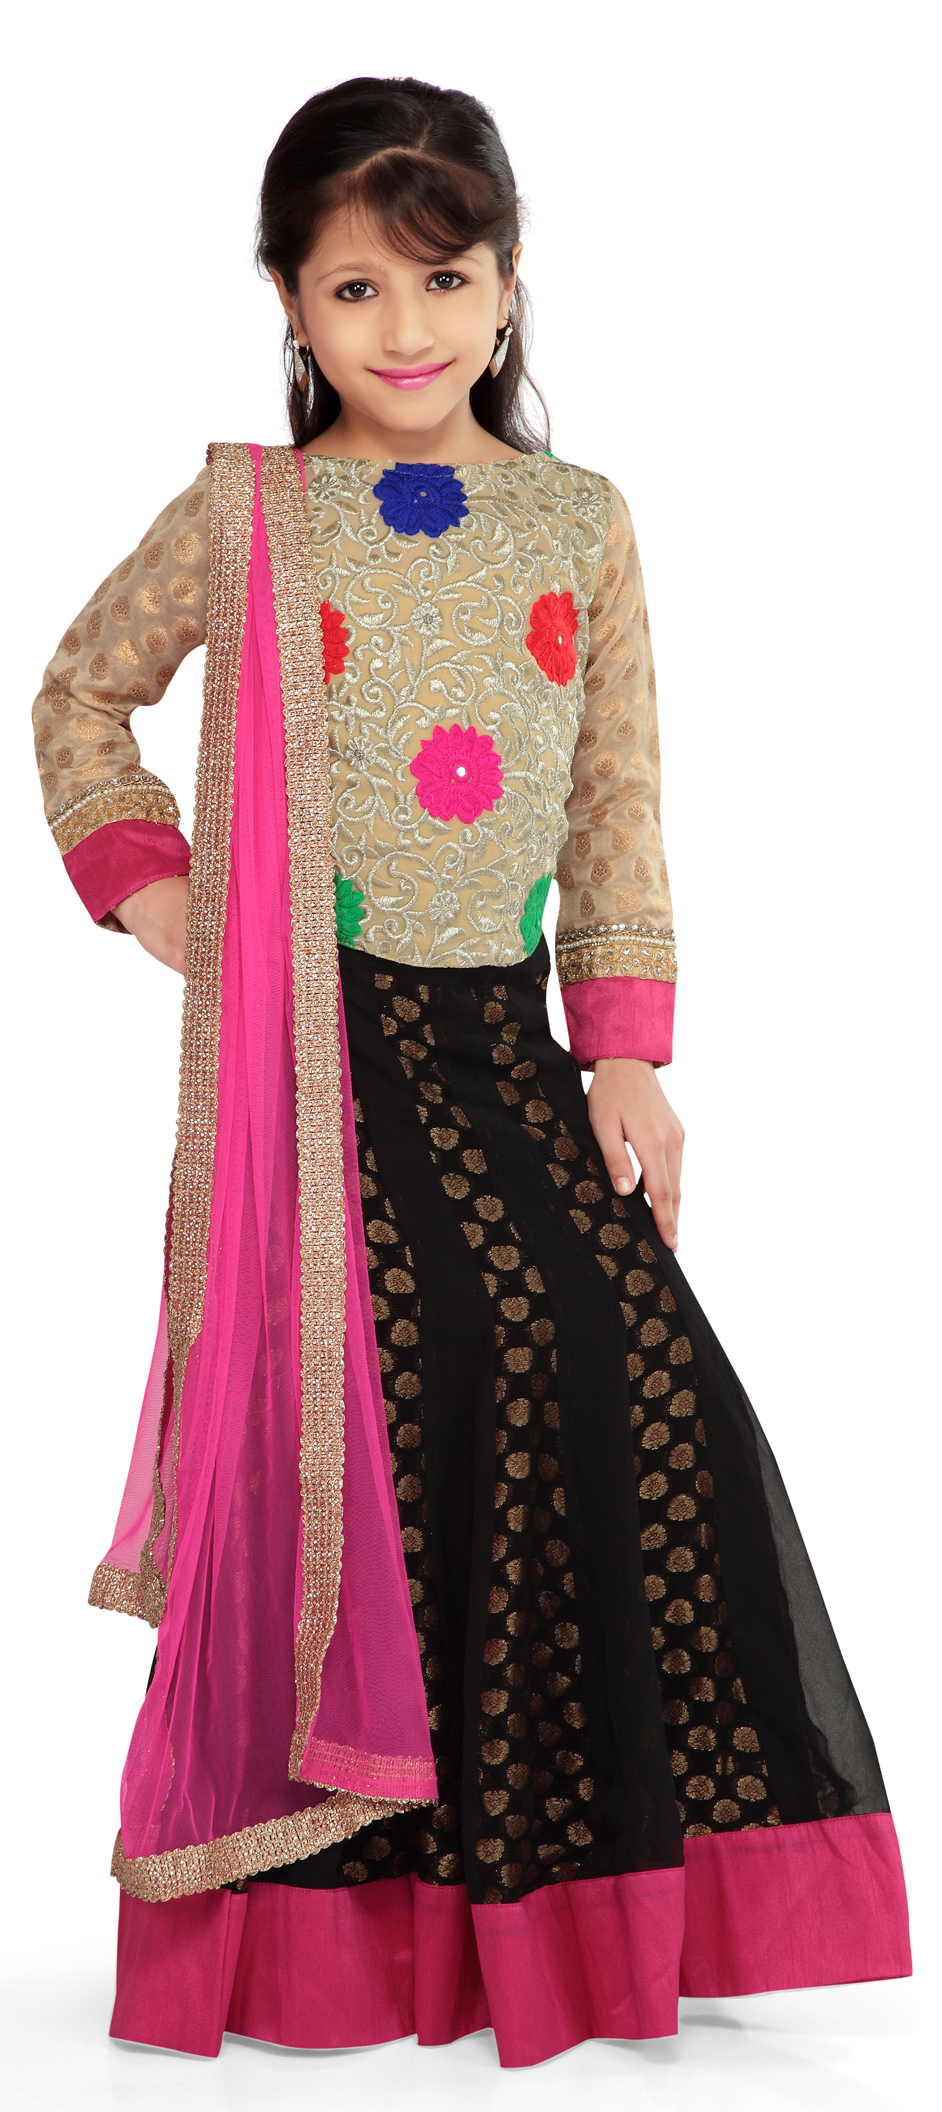 200562 black and grey beige and brown color family kids lehenga